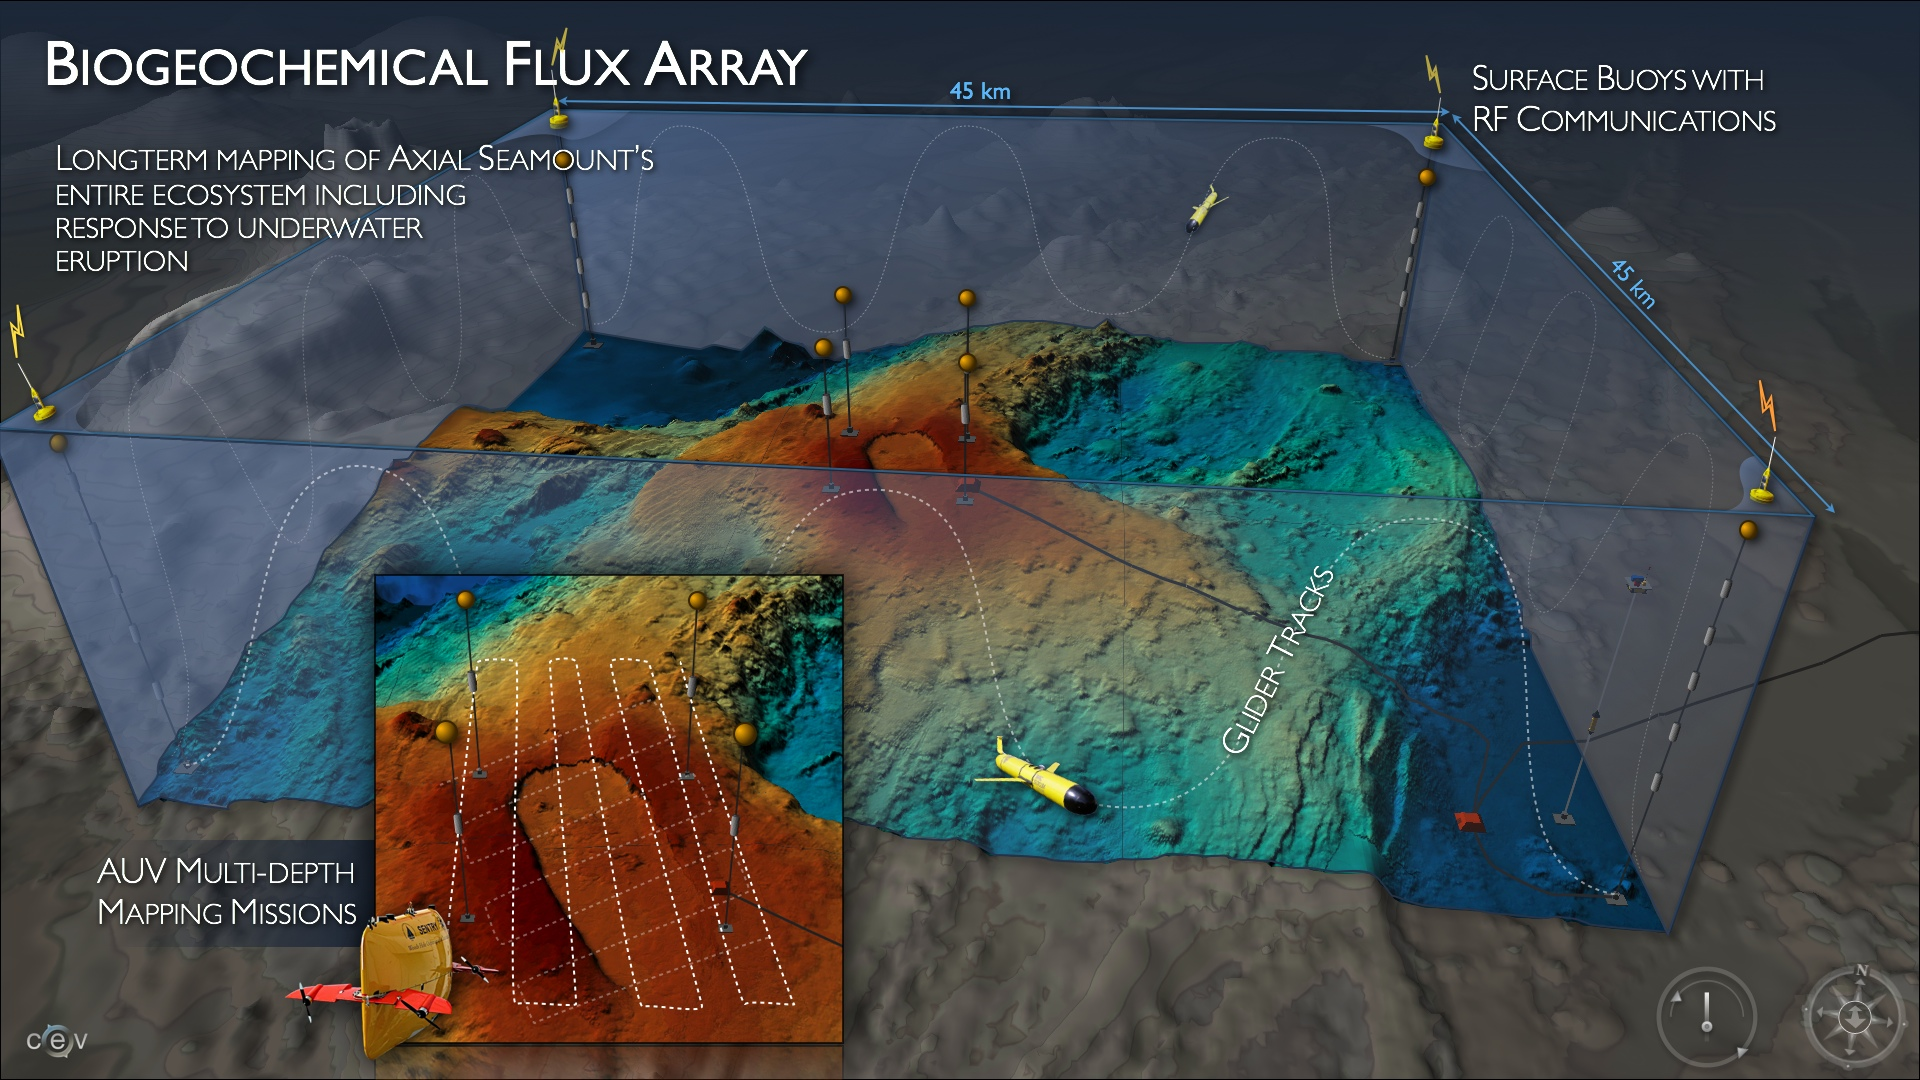 Biogeochemical Flux Array